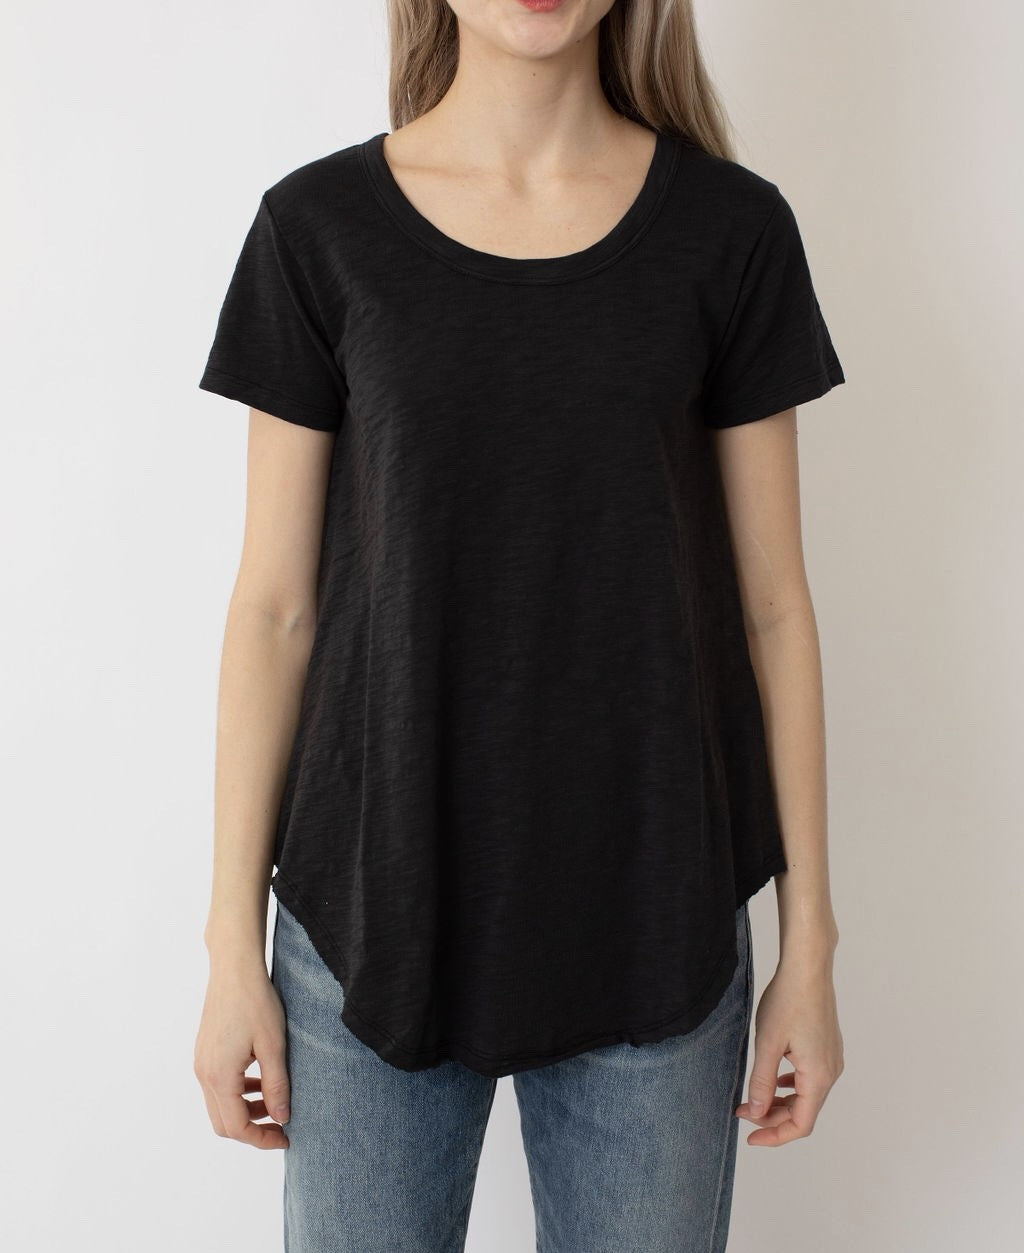 THE ABBY SOLID TEE